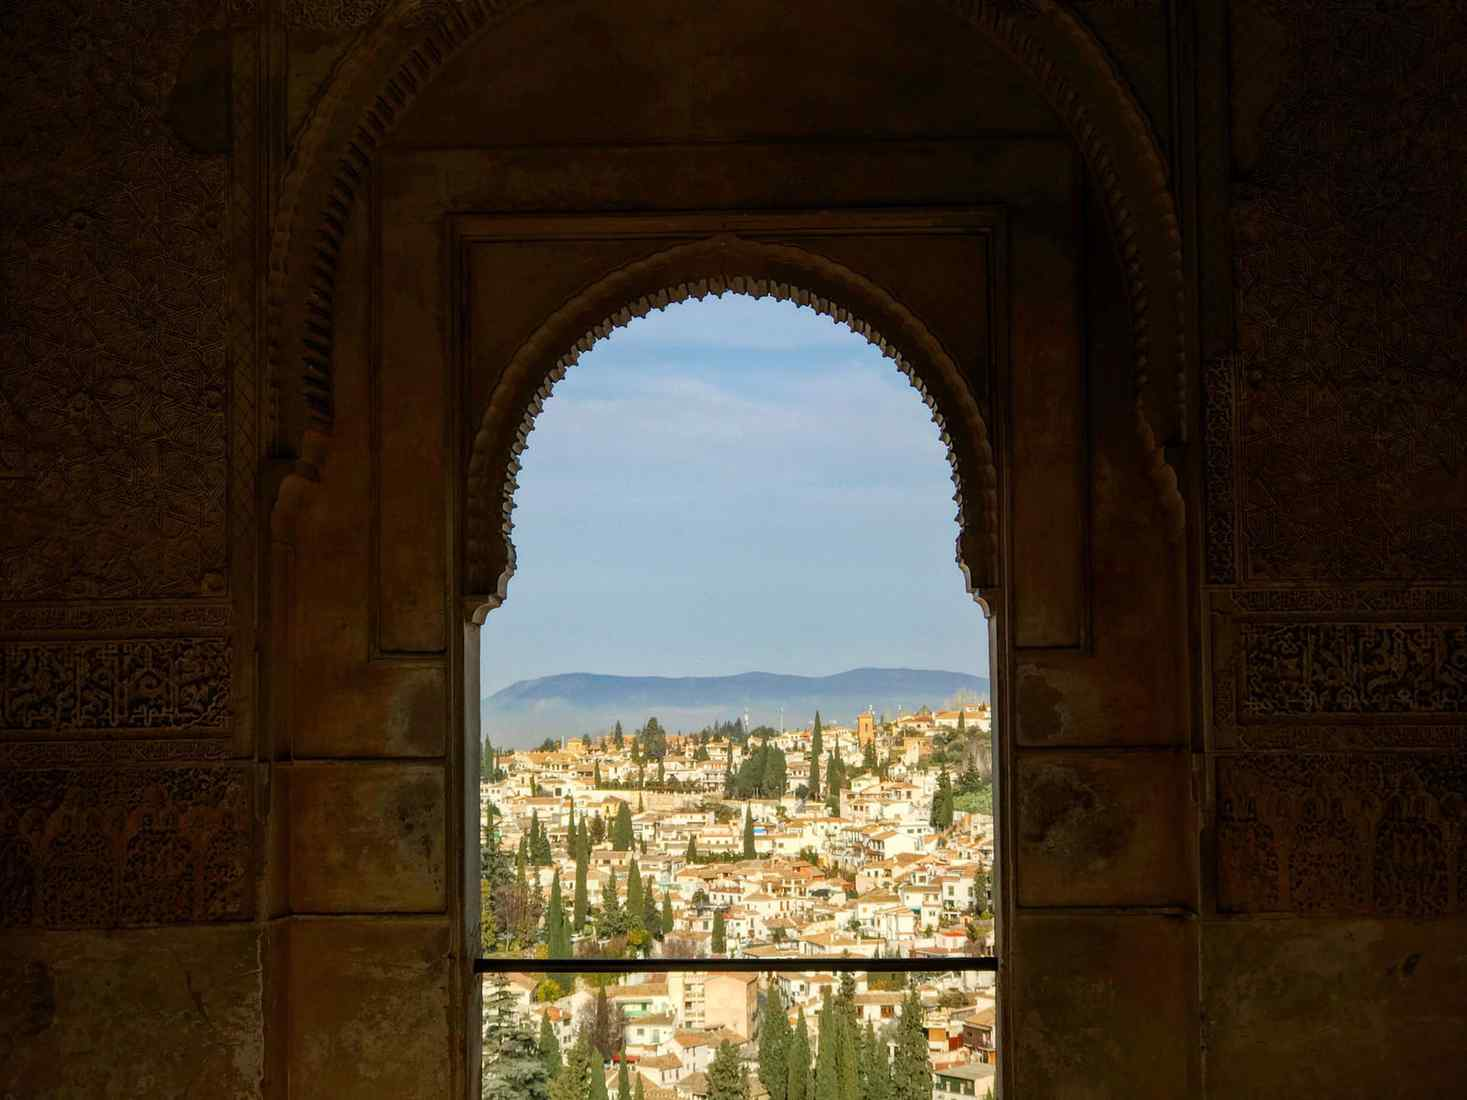 Looking through a window over a town in Andalusia, Spain